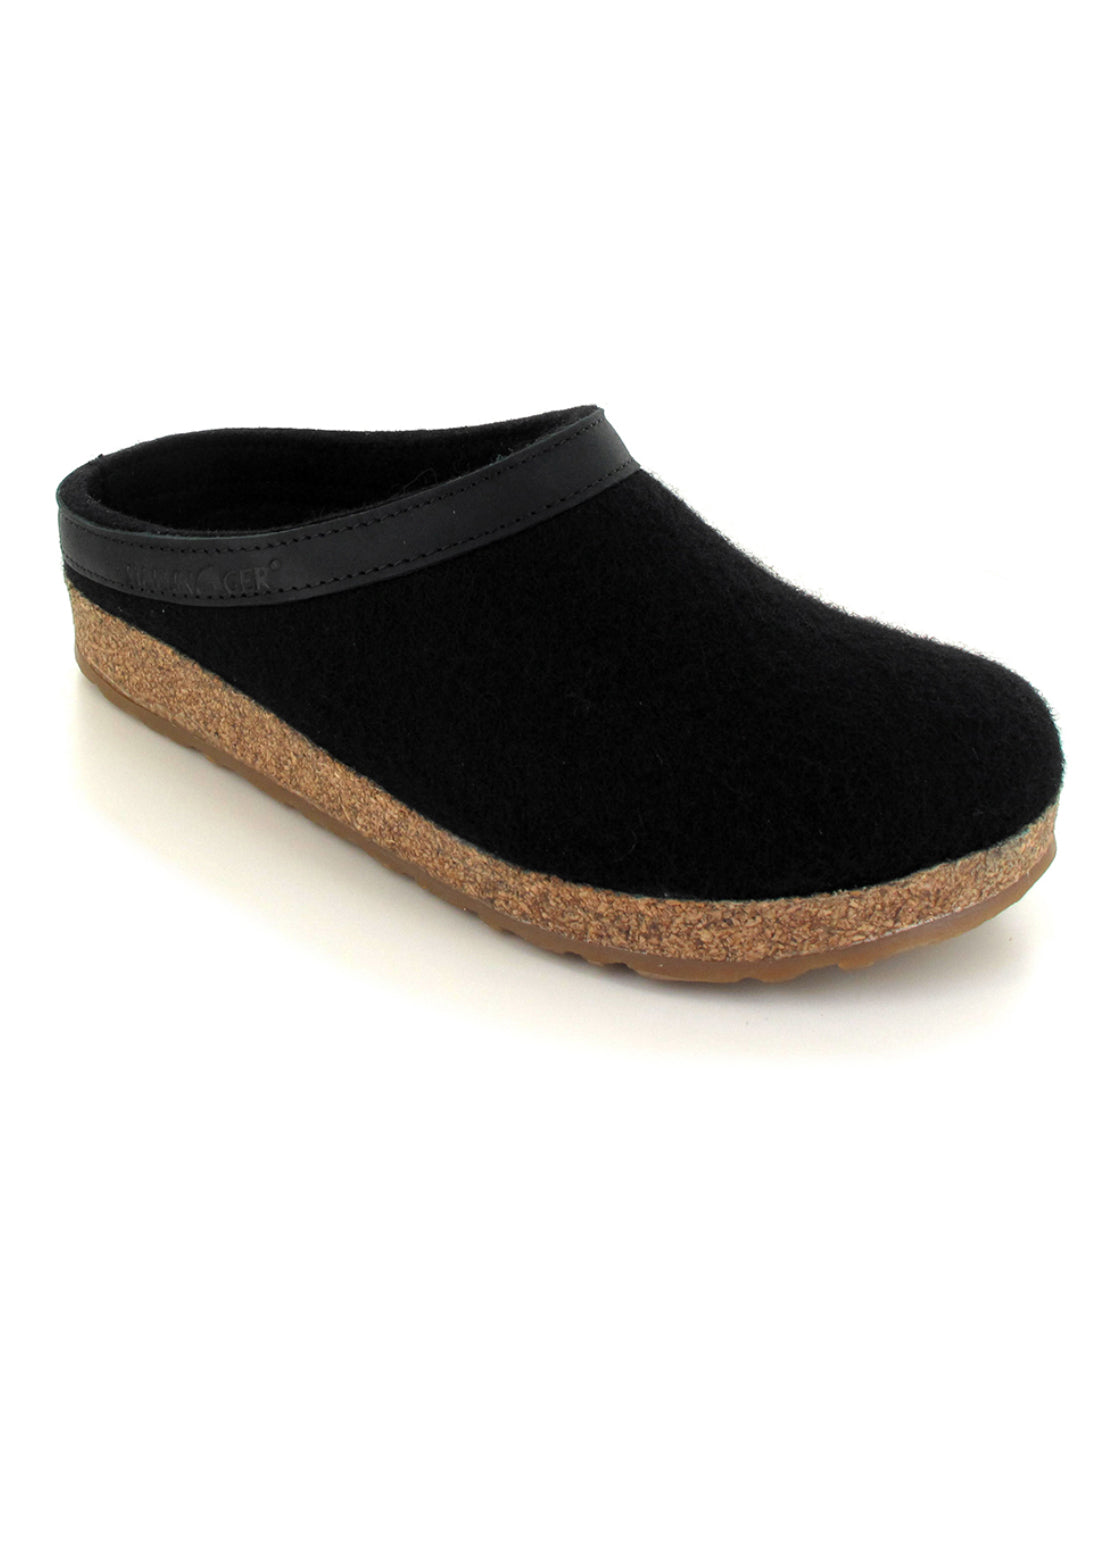 Haflinger Women's Torben Slippers Black